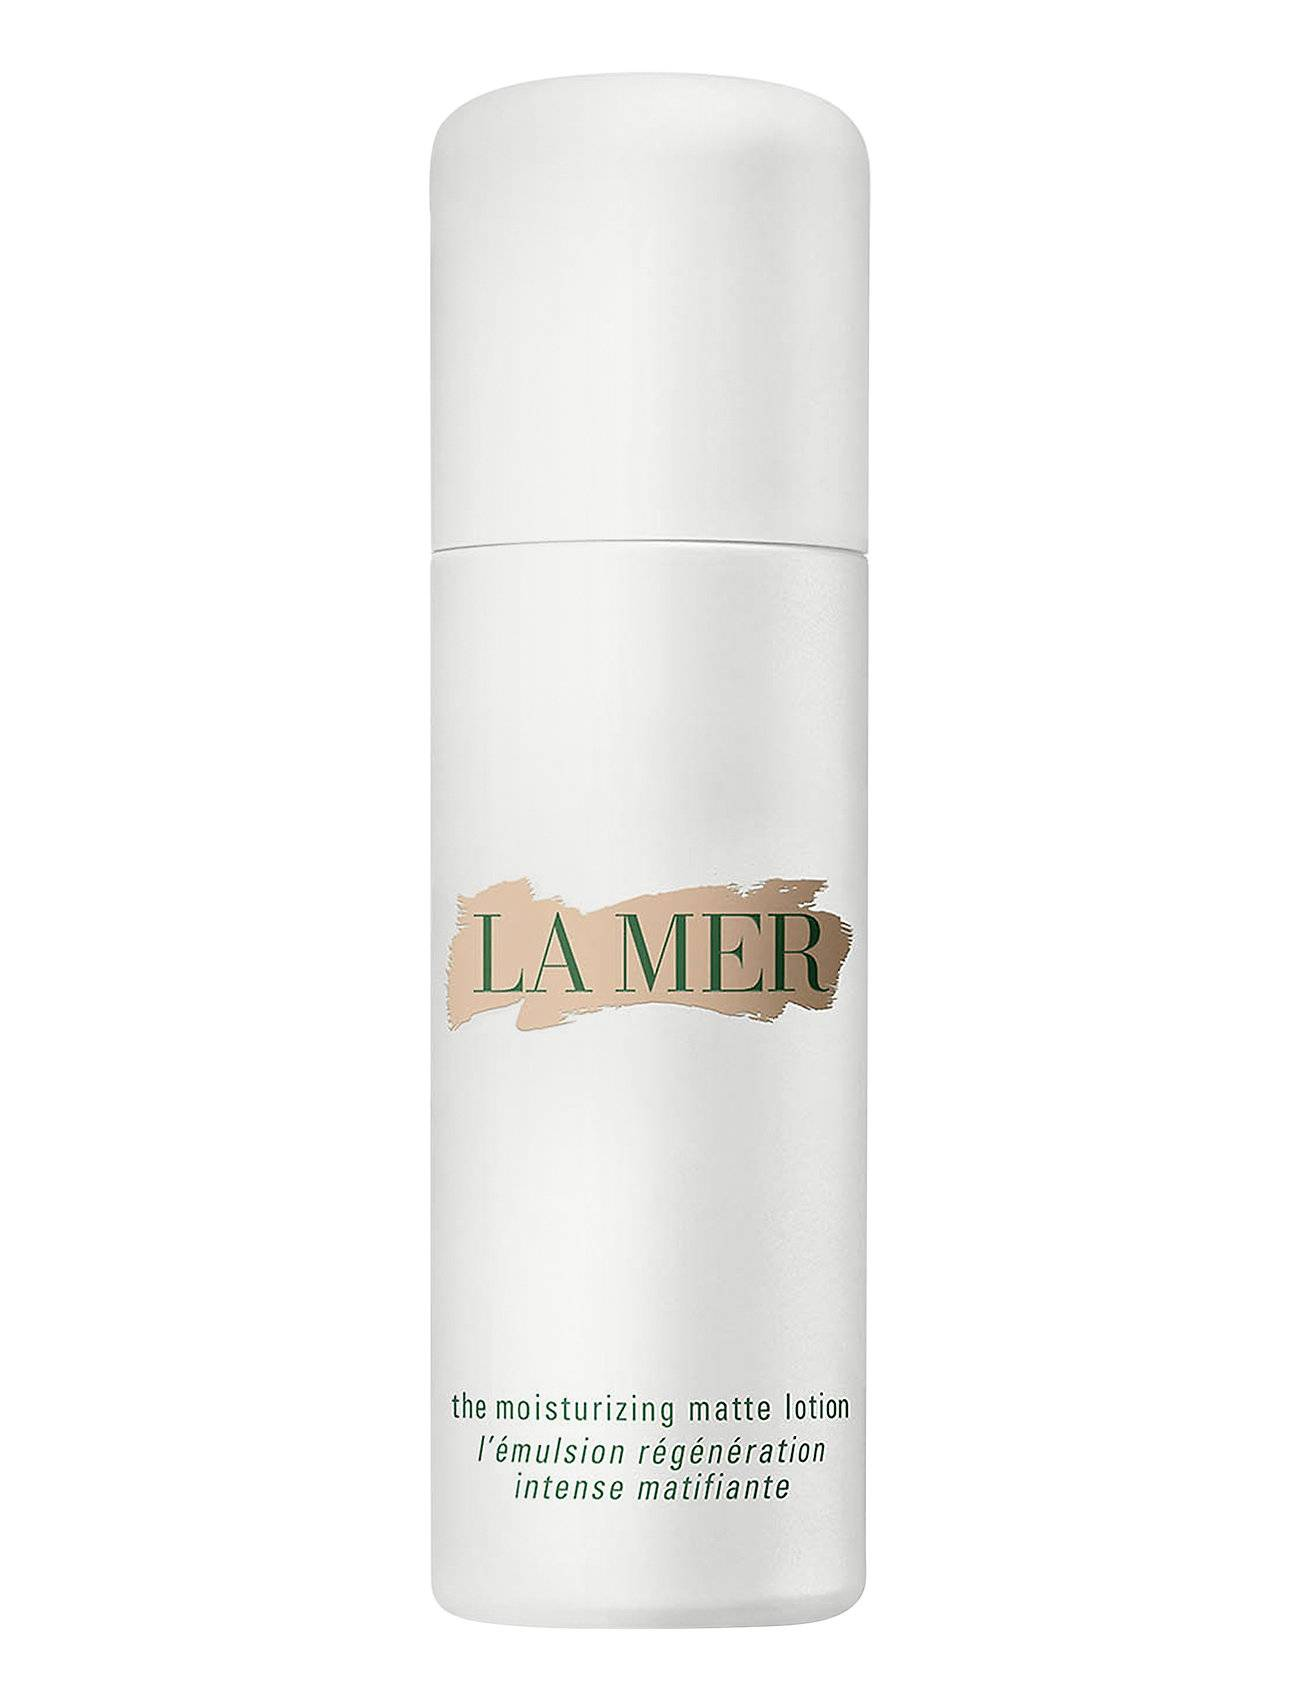 La Mer The Moisturizing Matte Lotion 50ml.